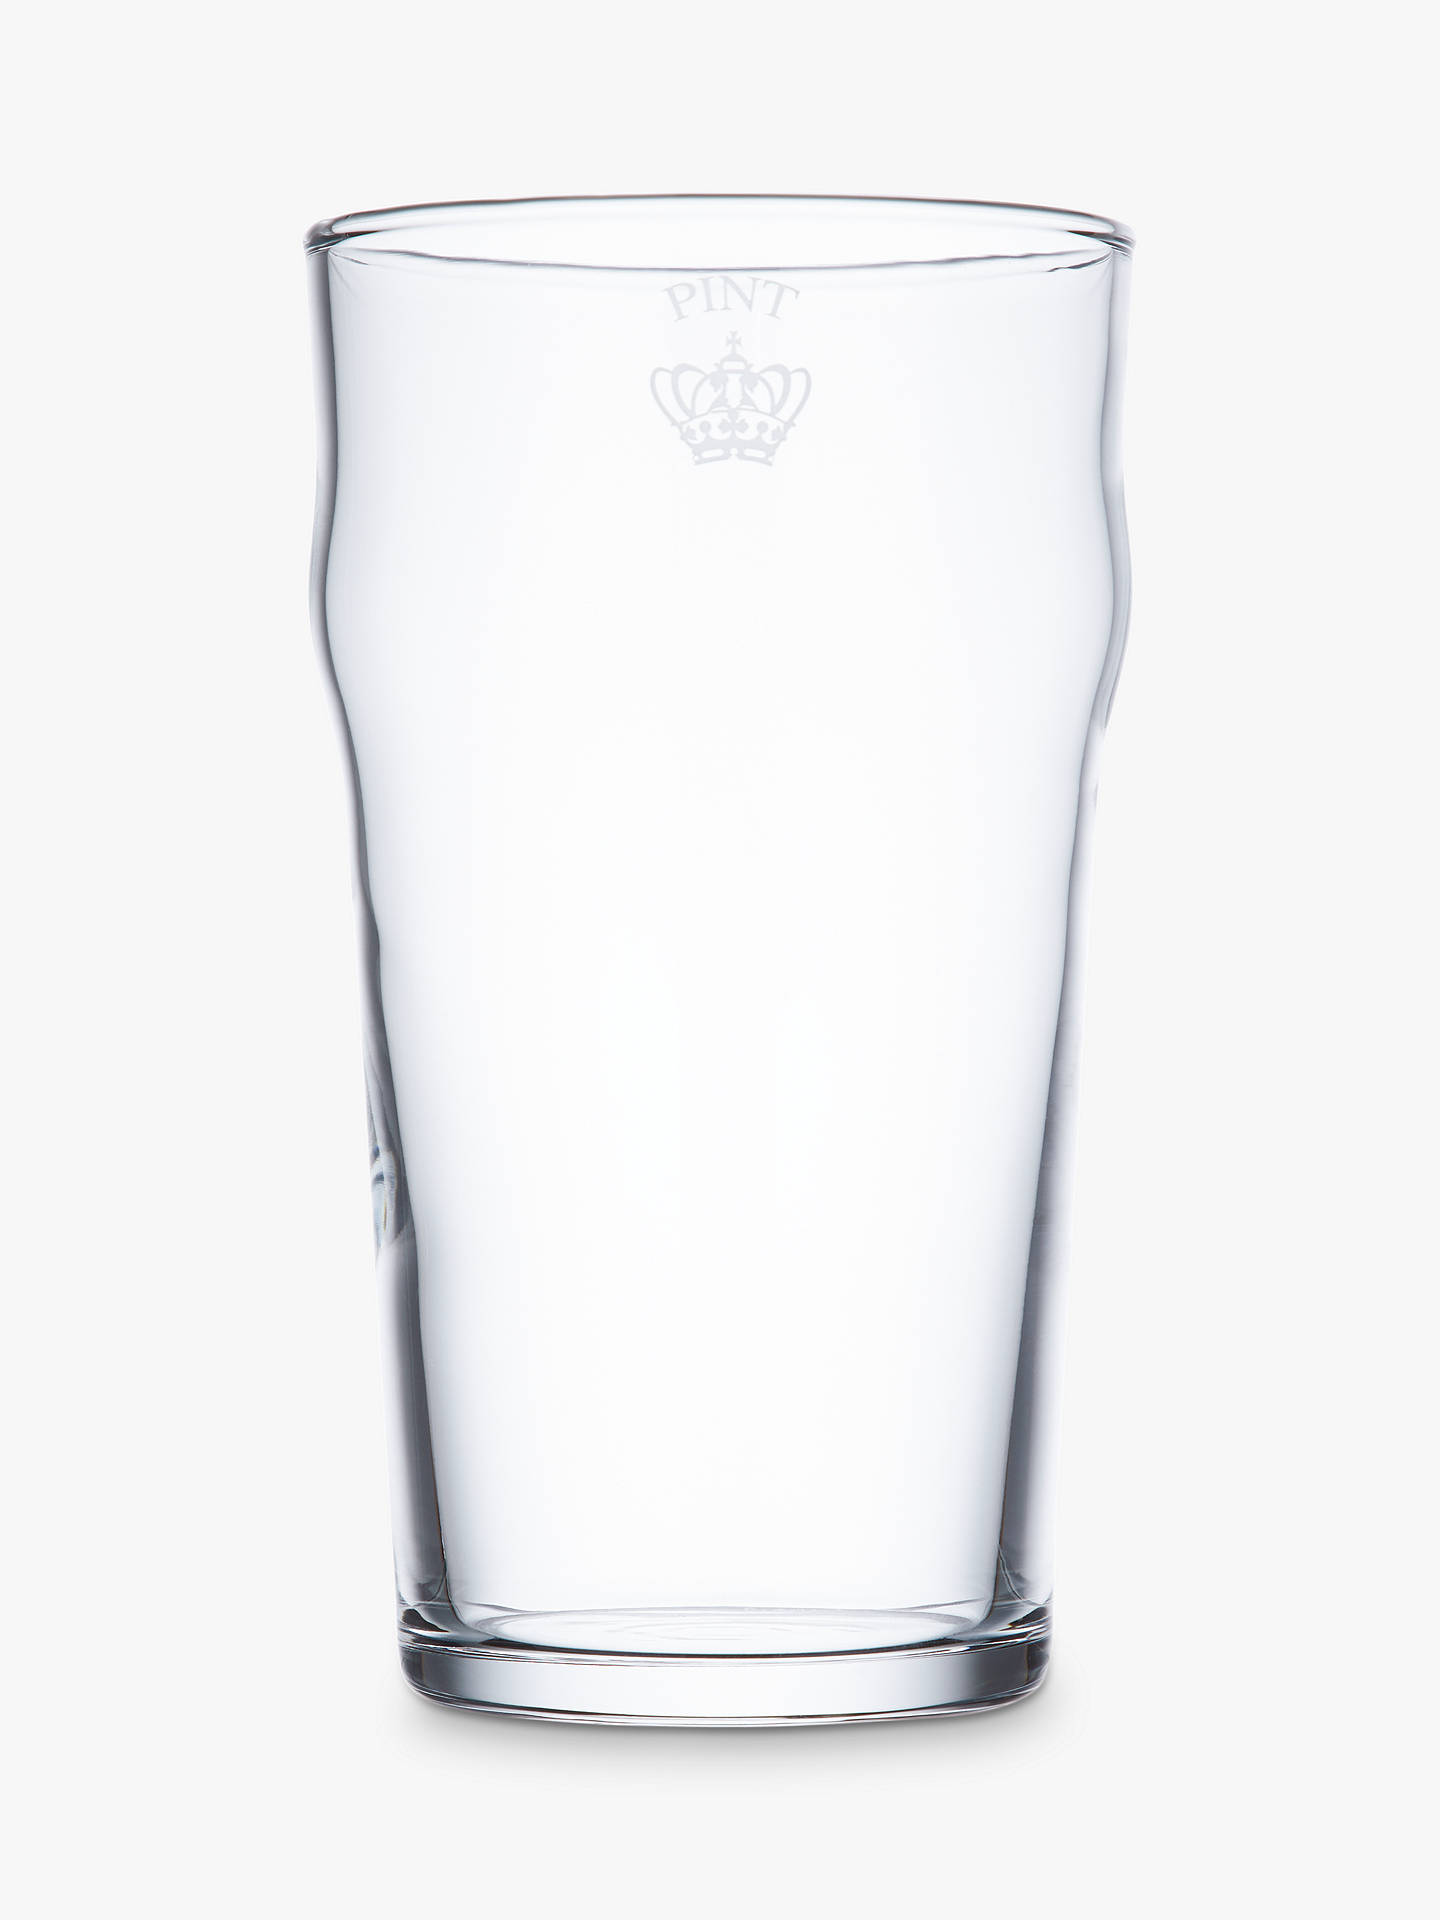 Buy John Lewis & Partners Cellar Pint Glasses, Clear, 580ml, Set of 2 Online at johnlewis.com